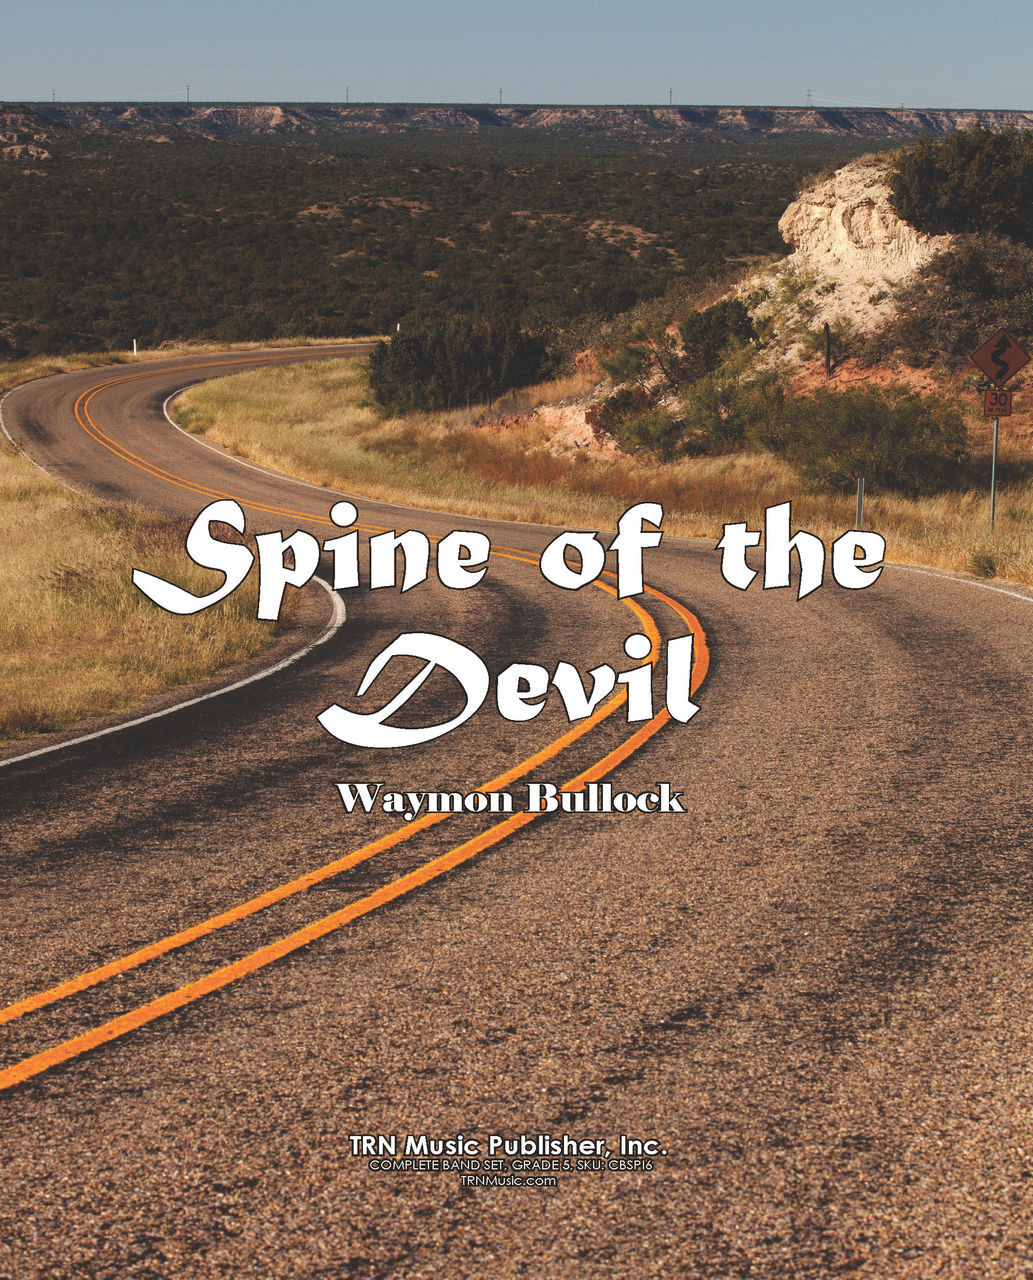 Spine of the Devil (March) - TRN Music Publisher